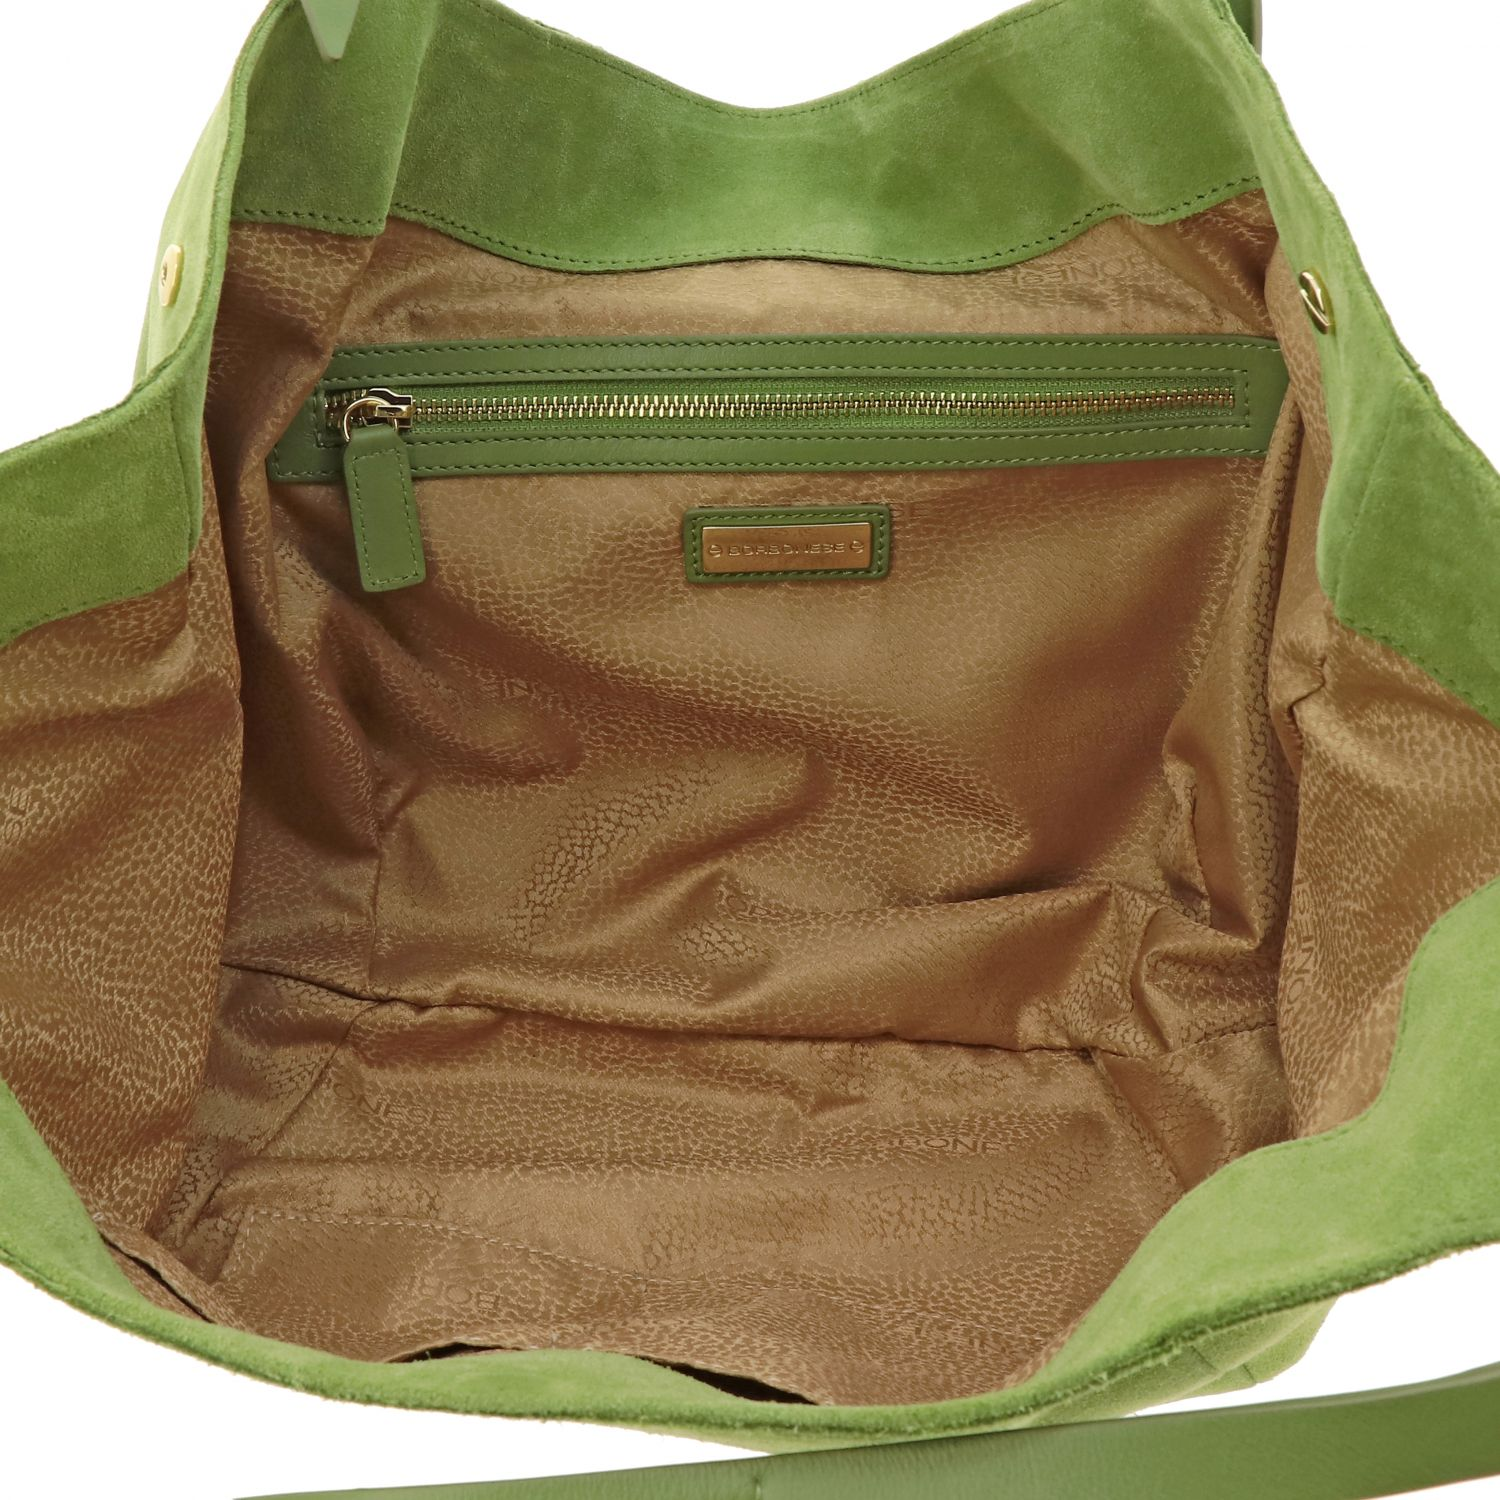 Borbonese shoulder bag in suede and leather green 5